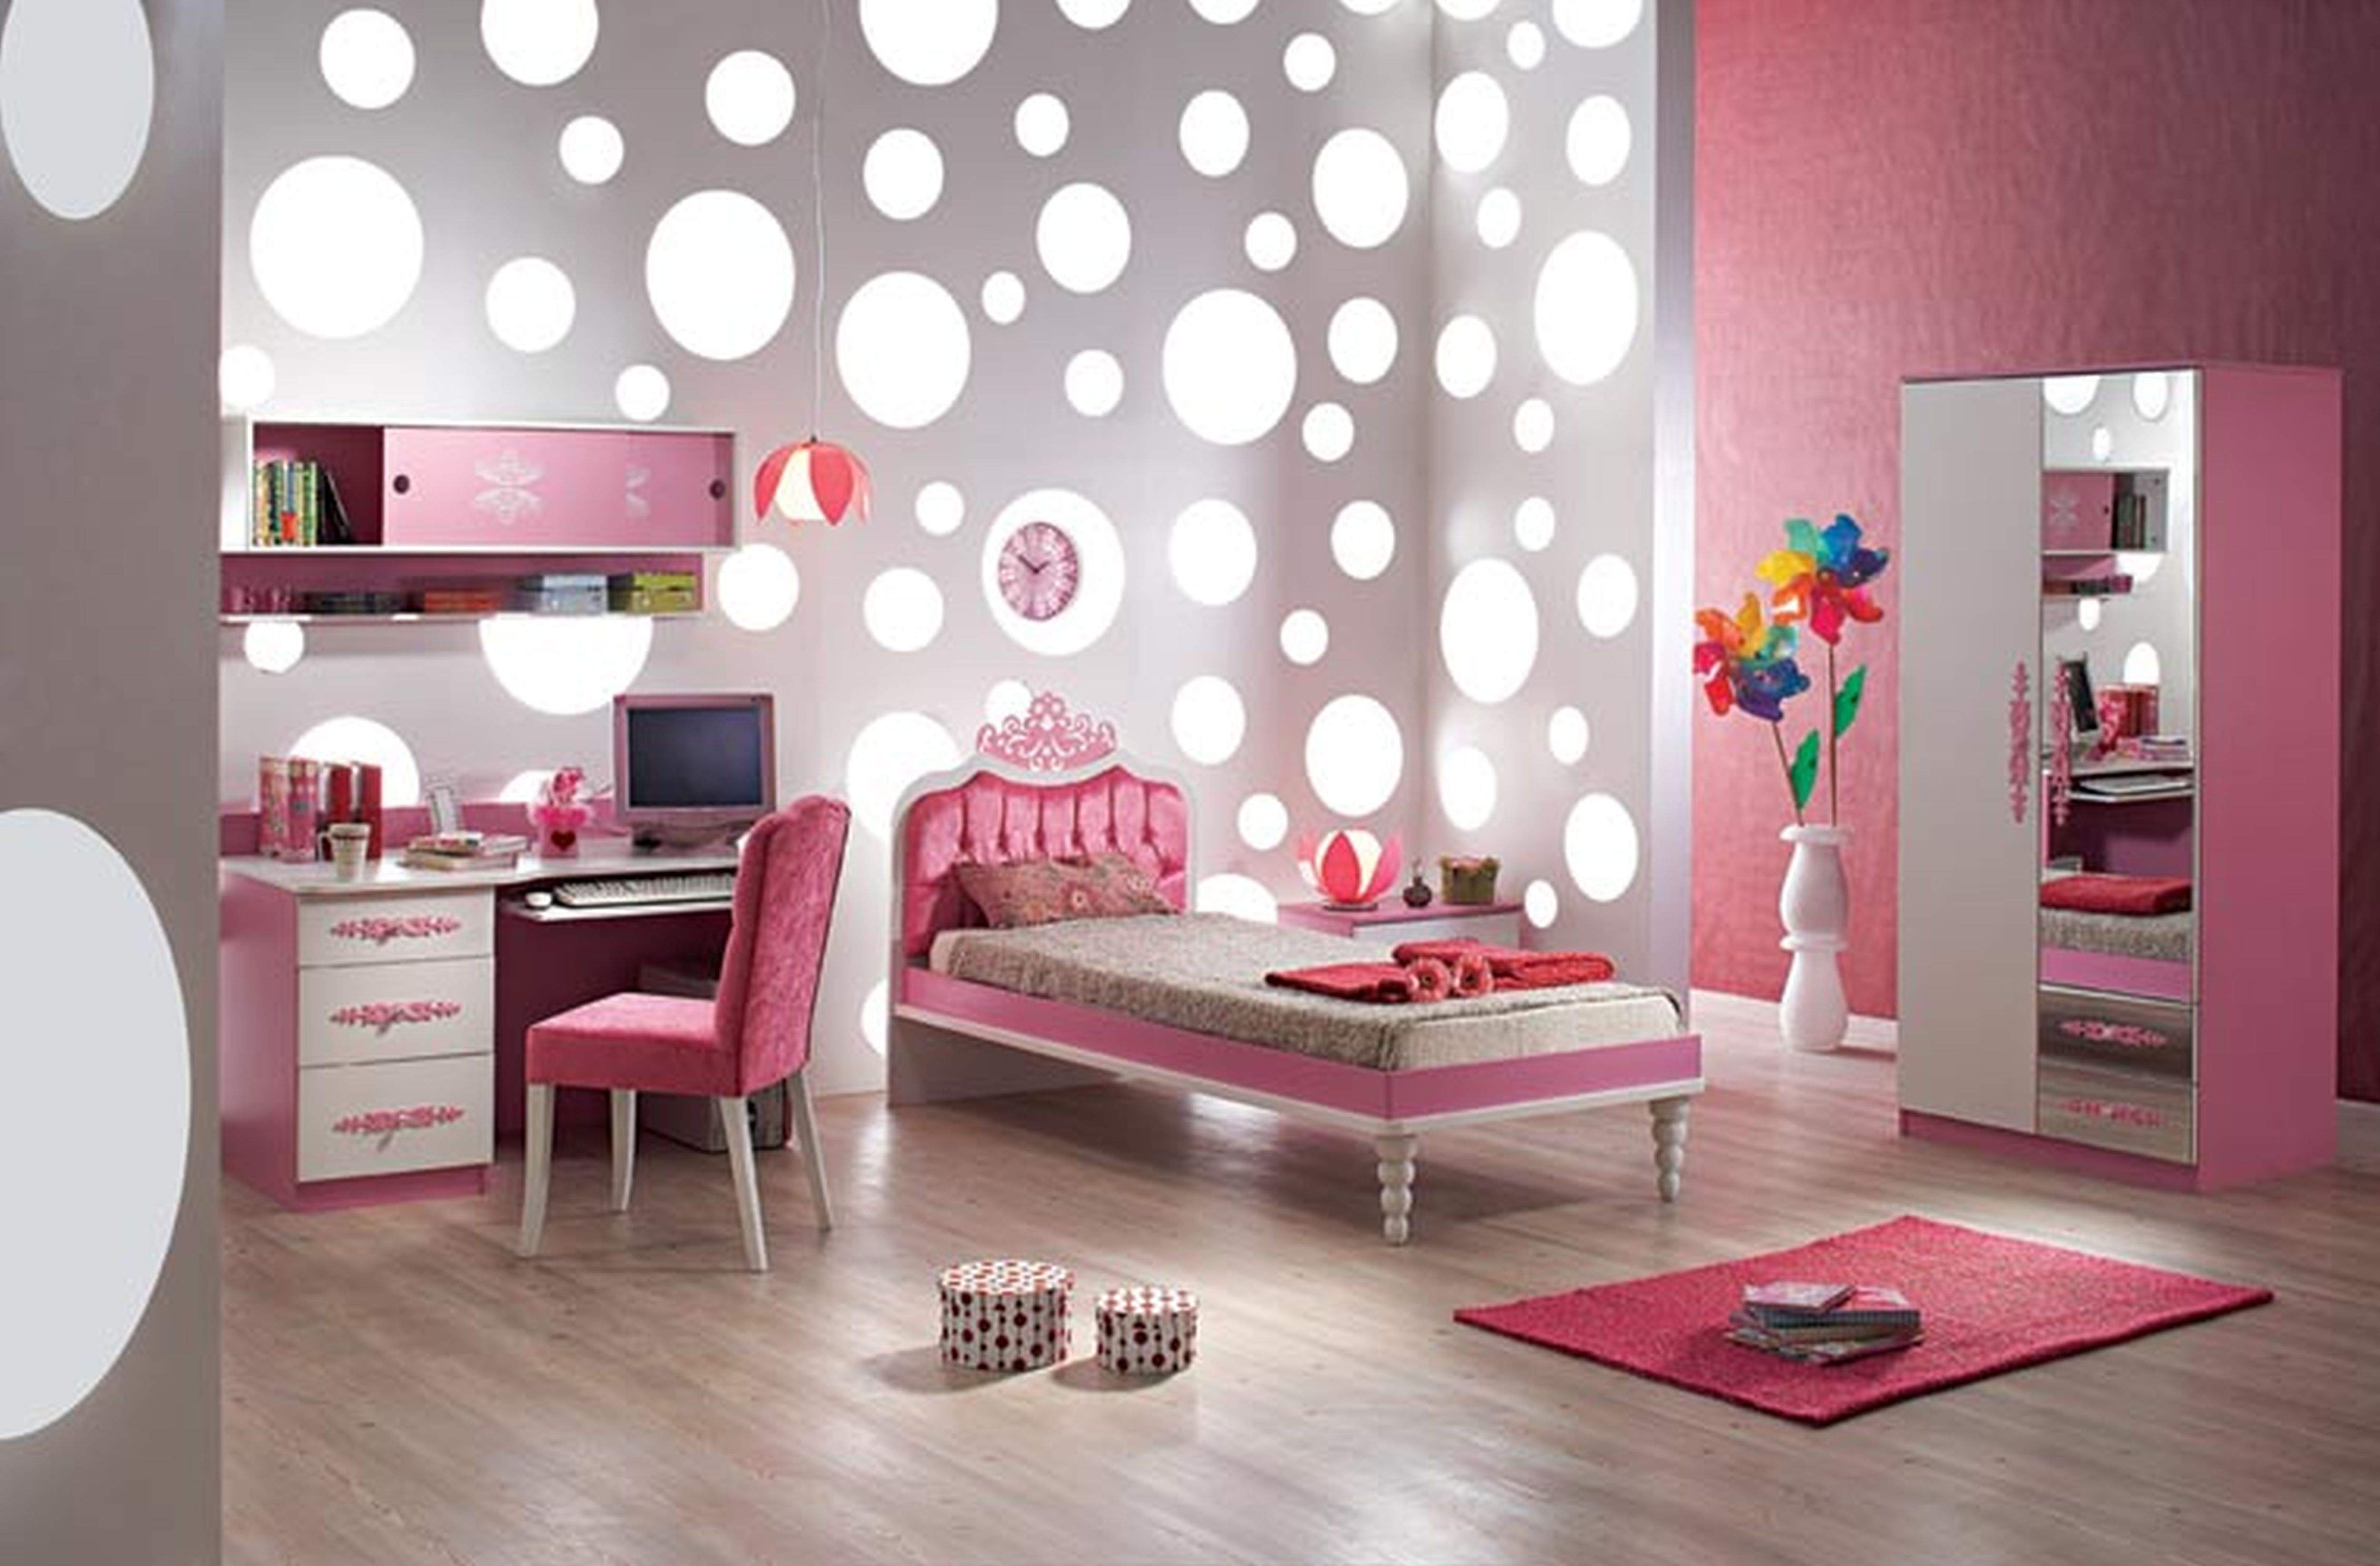 Bedroom Find Inspirations Decorating Home Cool Room Ideas